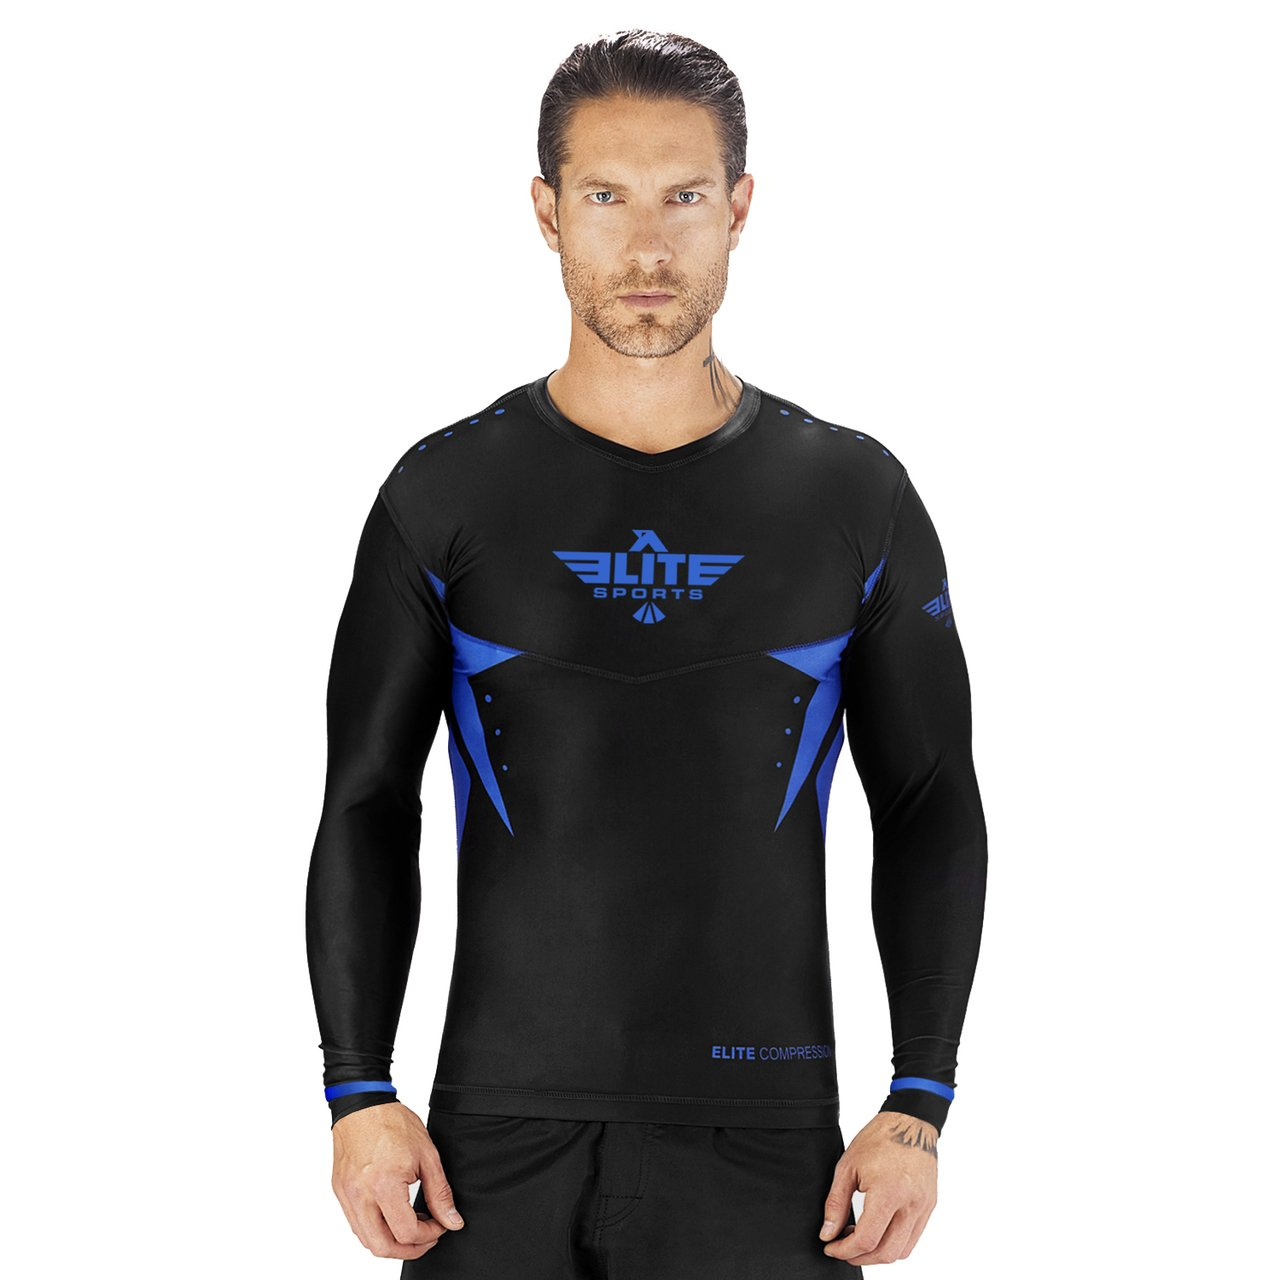 Load image into Gallery viewer, Elite Sports Star Series Sublimation Black/Blue Long Sleeve Wrestling Rash Guard